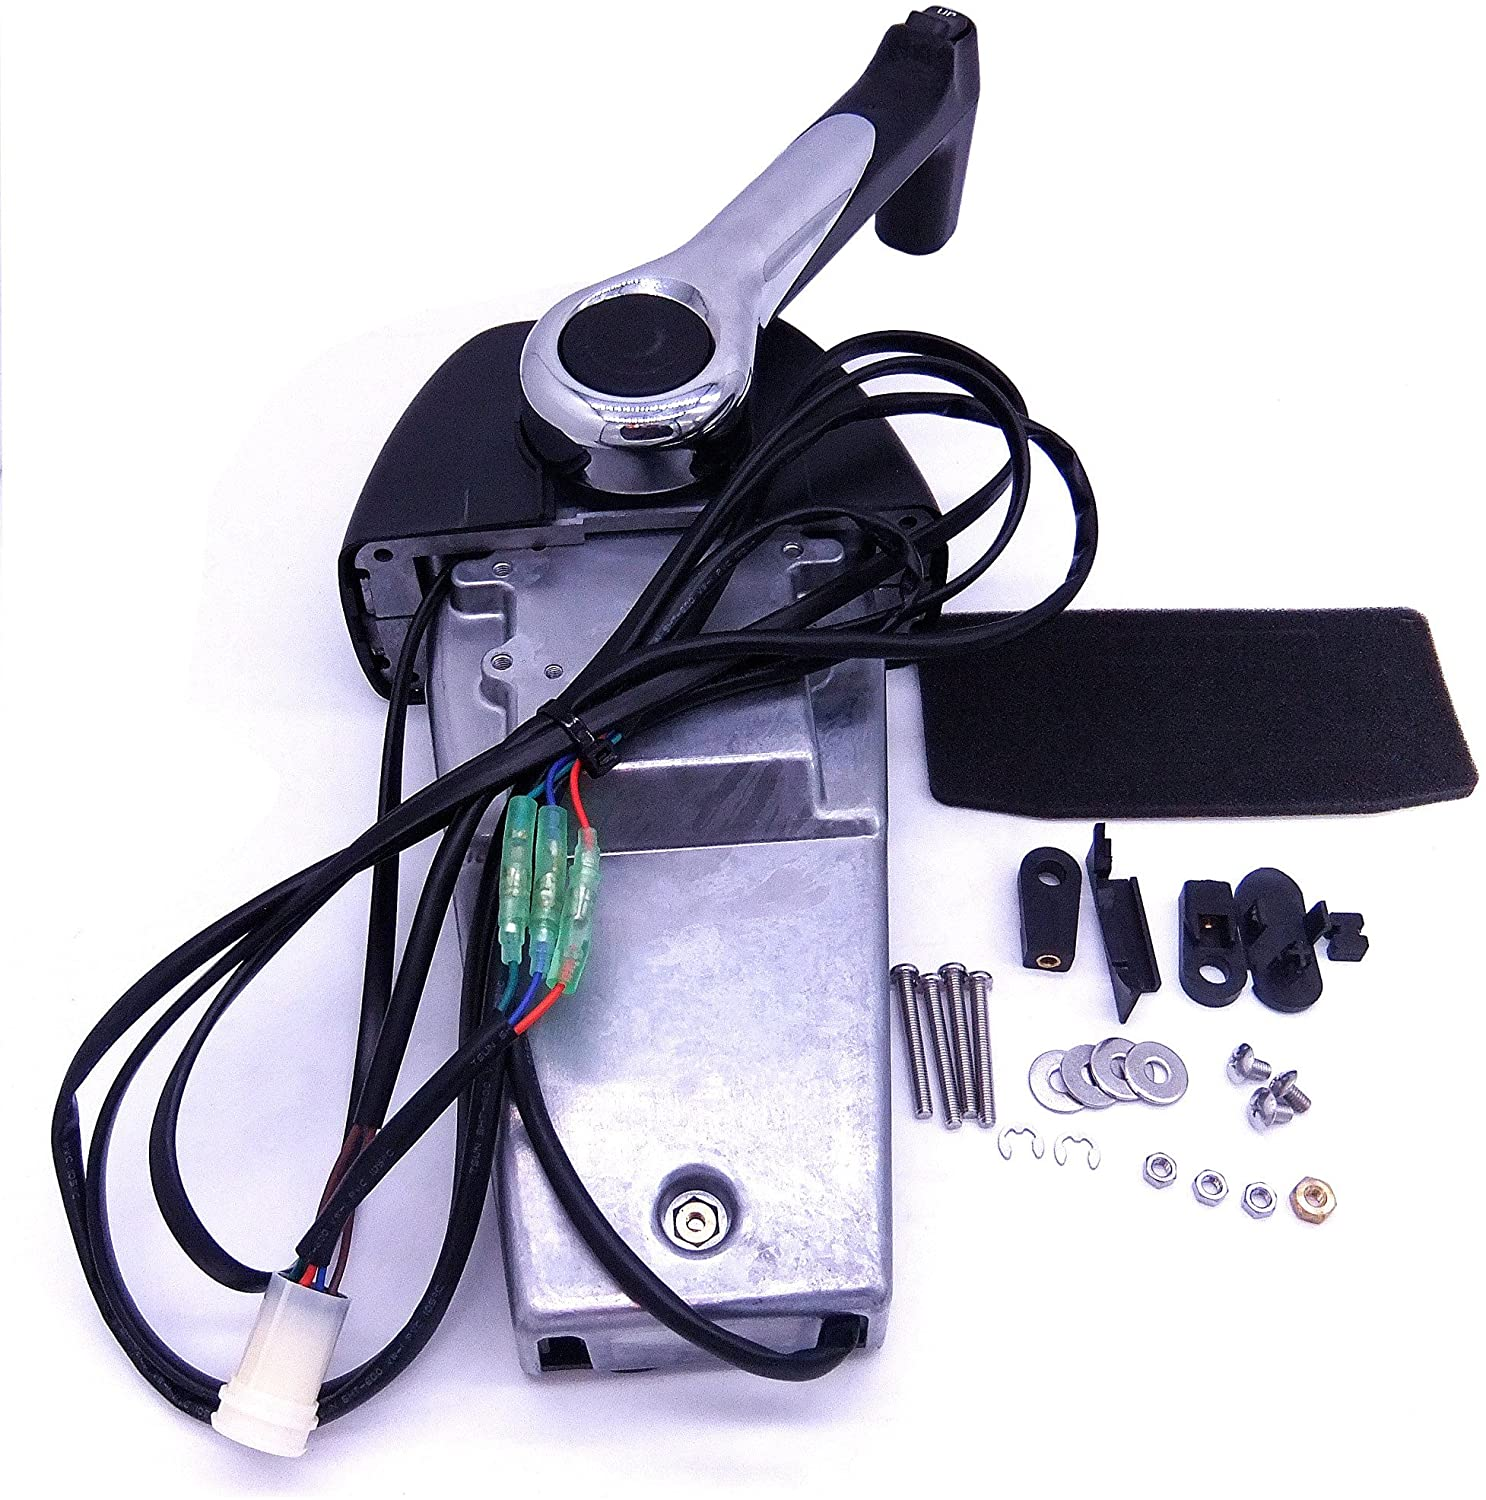 704 704-48205 Binnacle Single Engine Outboard Throttle Remote Control Box for Yamaha Outboard Engine/704-48205-P1-00